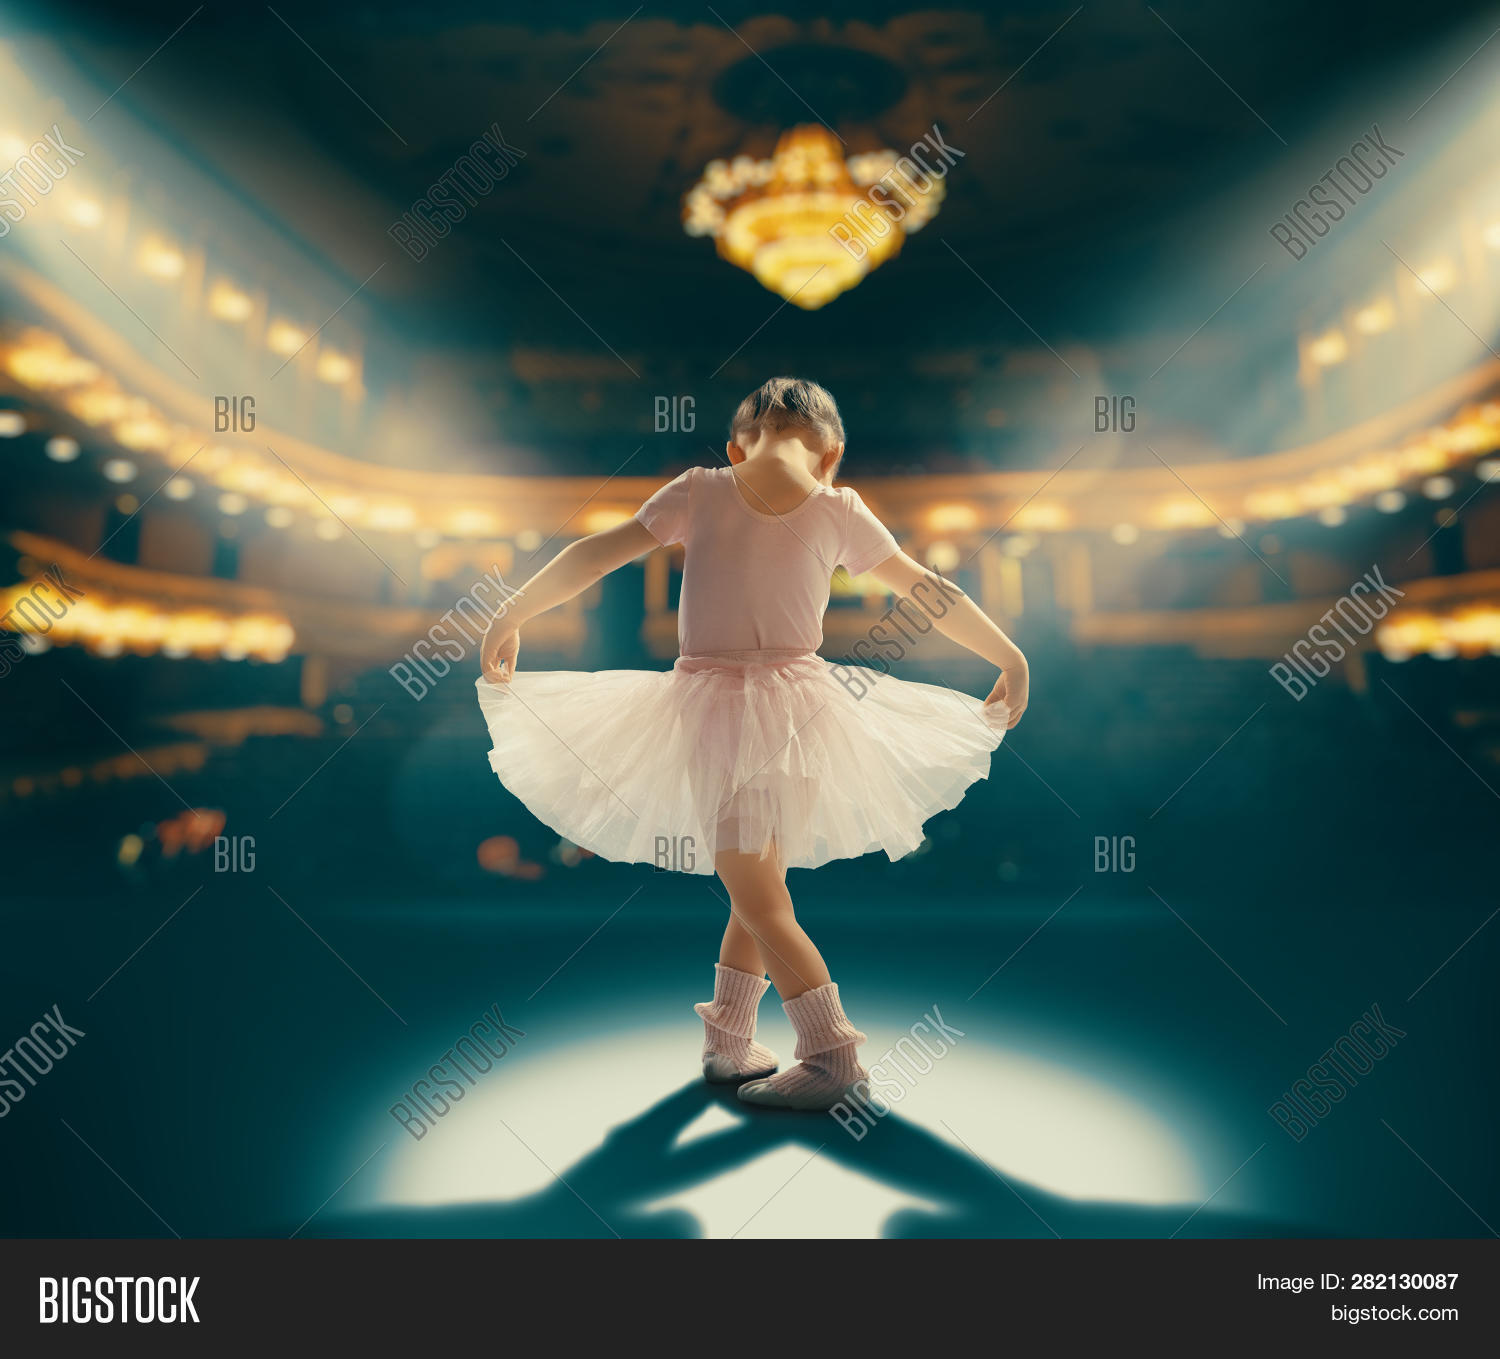 art,baby,ballerina,ballet,beautiful,beauty,becoming,caucasian,cheerful,child,childhood,clothing,costume,cute,dance,dancer,dream,dress,education,fashion,future,girl,happy,kid,lifestyle,light,little,musical,one,people,performance,person,pink,pointe,portrait,pretty,princess,scene,shoes,show,skirt,space,stage,studio,theatre,theatrical,toddler,training,tutu,young